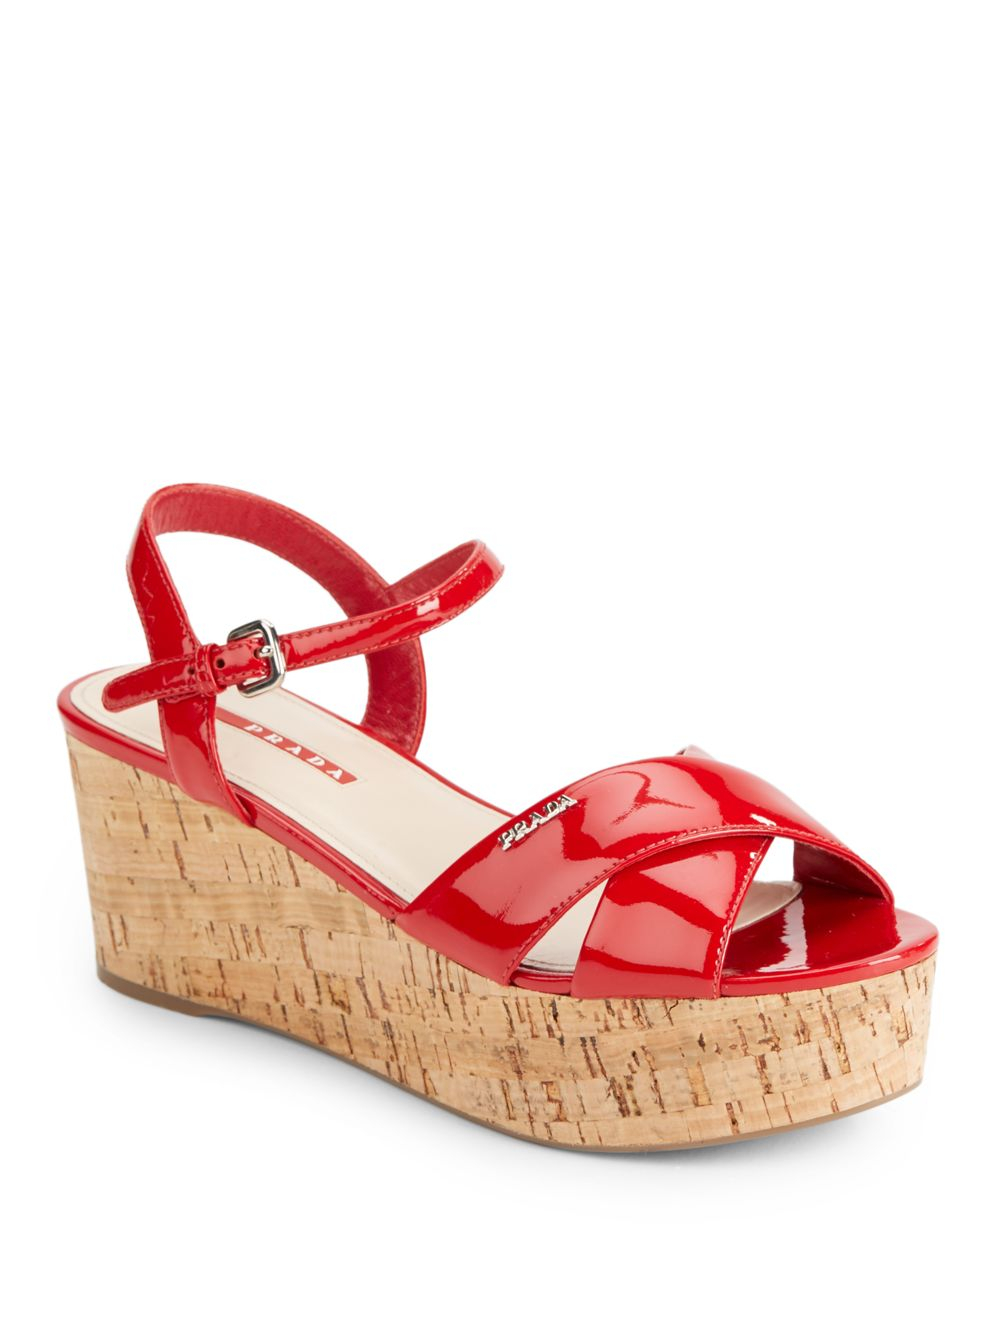 221ed48e9a1e Lyst - Prada Patent Leather Cork Wedge Sandals in Red